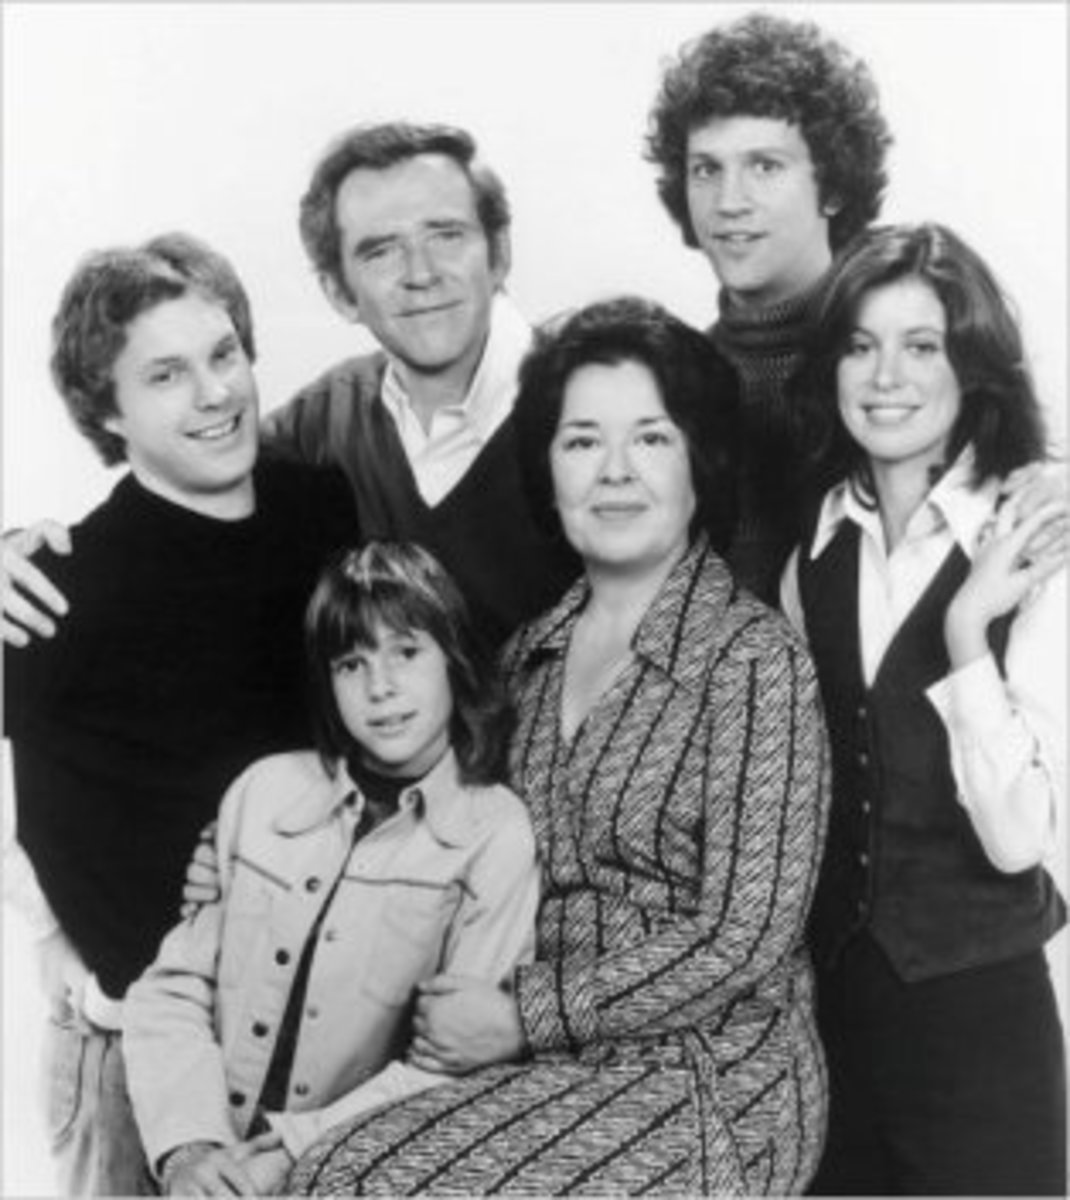 Catching Up With the Cast of 1970's 'Family'